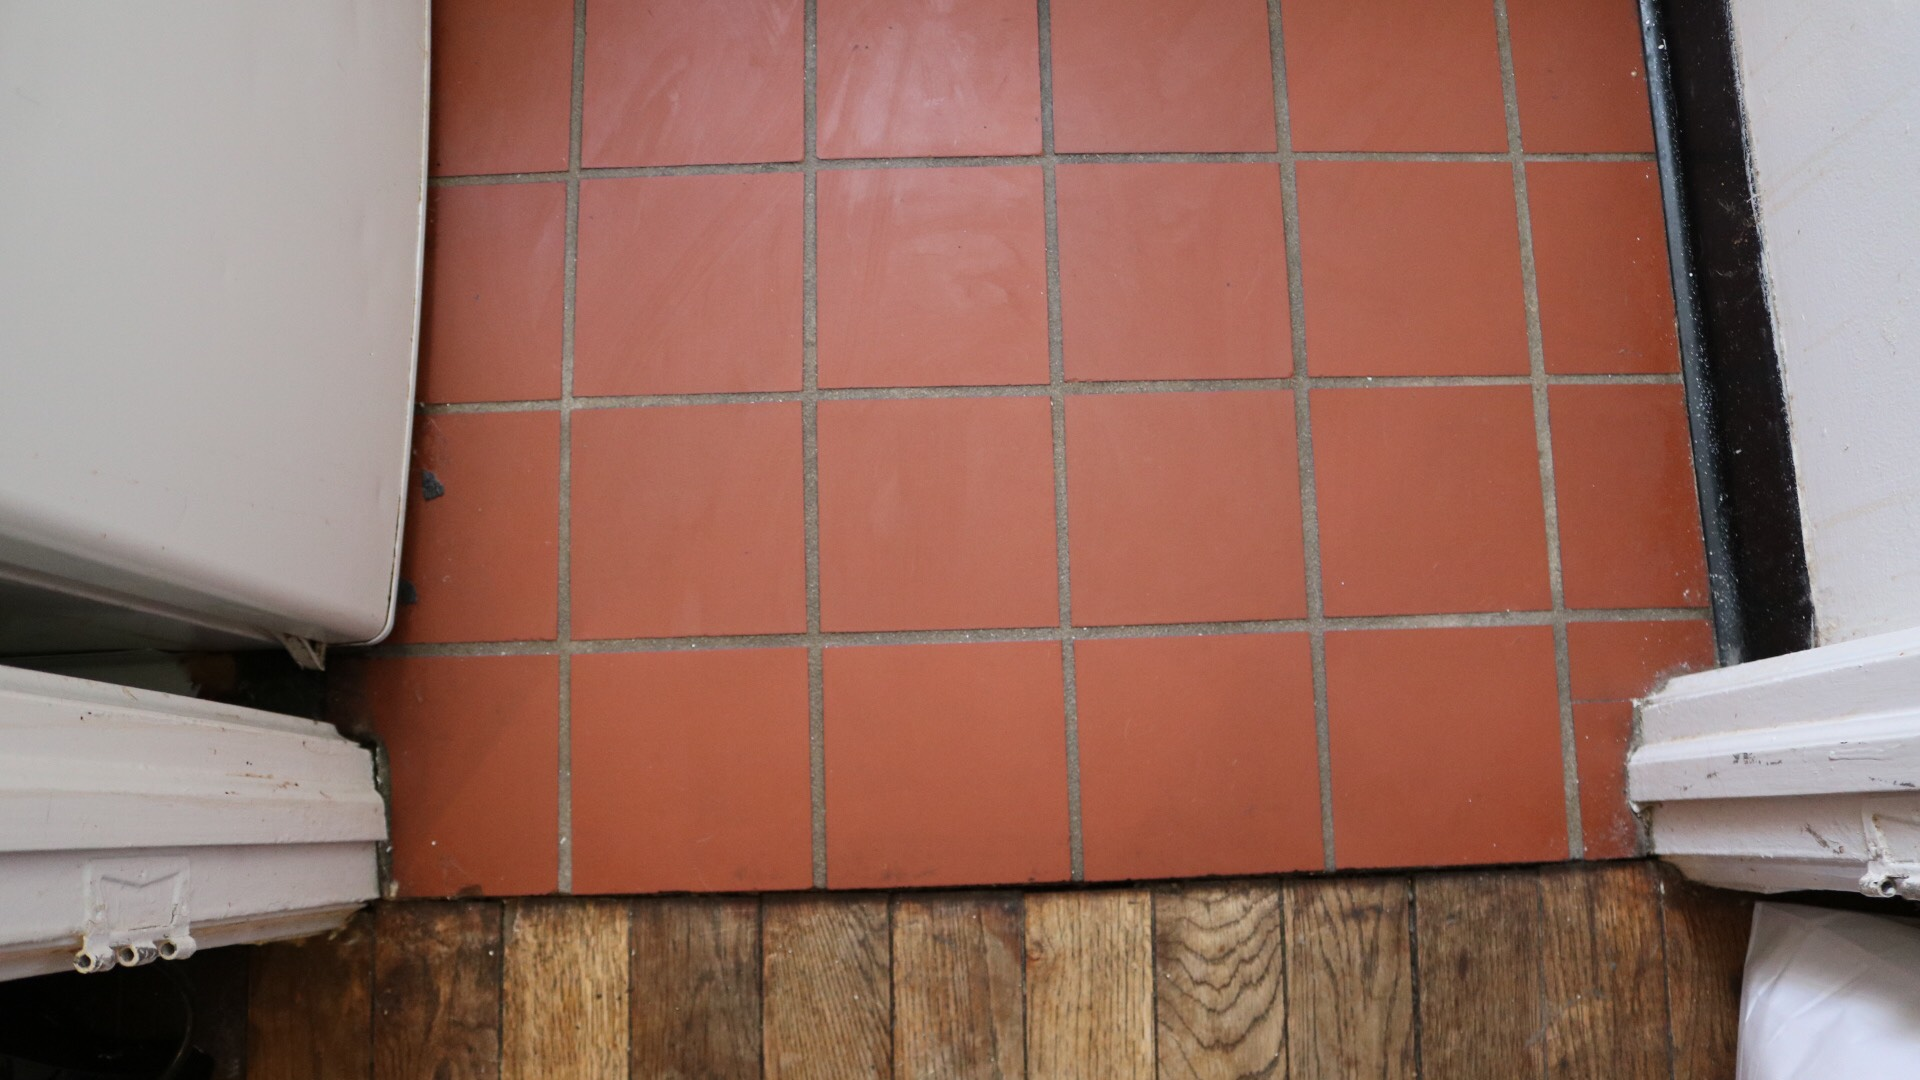 Peel And Stick Tiles A Cautionary Tale Apartment Therapy